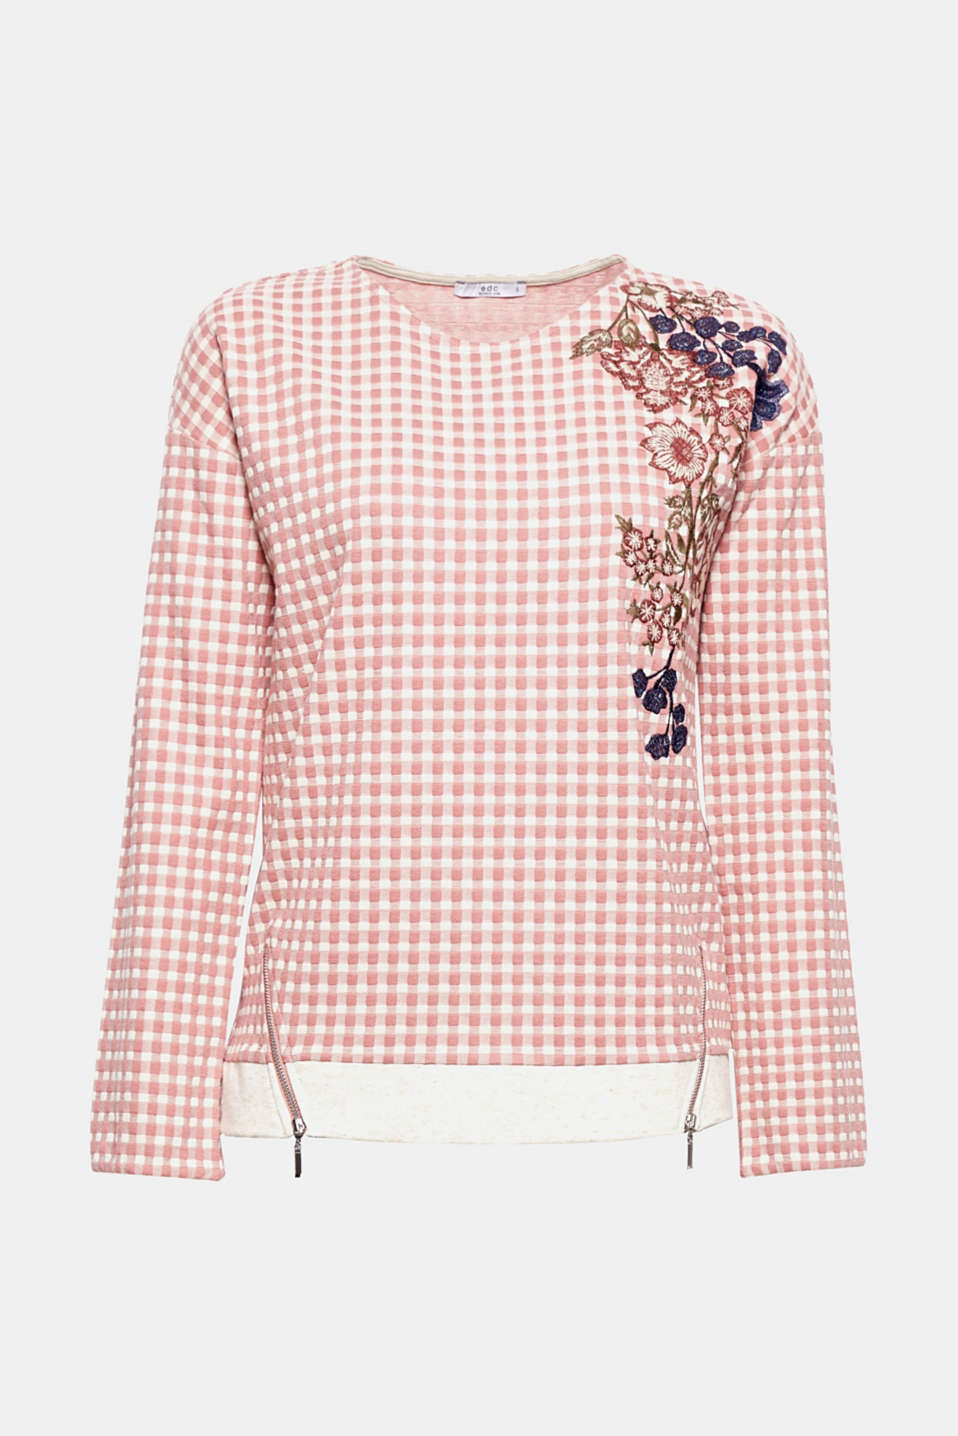 The elaborate floral embroidery gives this trendy, checked, lightweight sweatshirt with hem zips its new look!